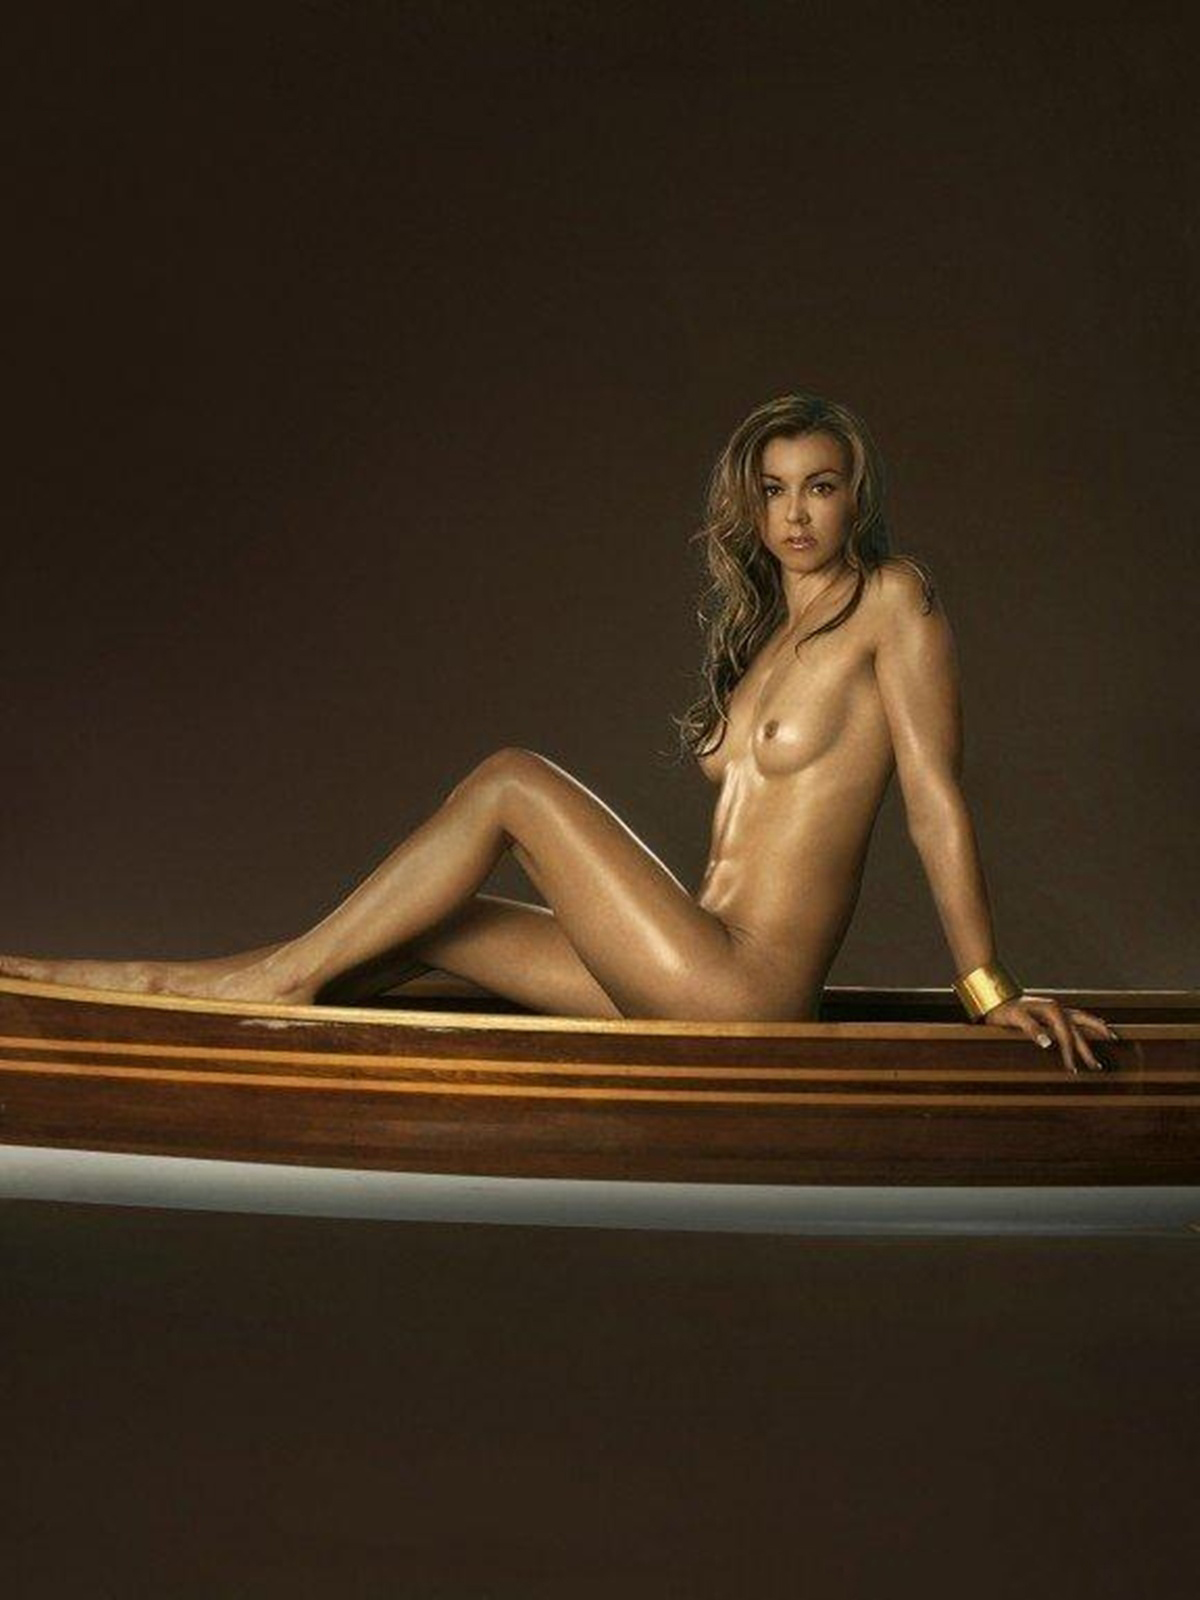 Nicole-Reinhardt-German-Olympians-Nude-For-Playboy-2.jpg